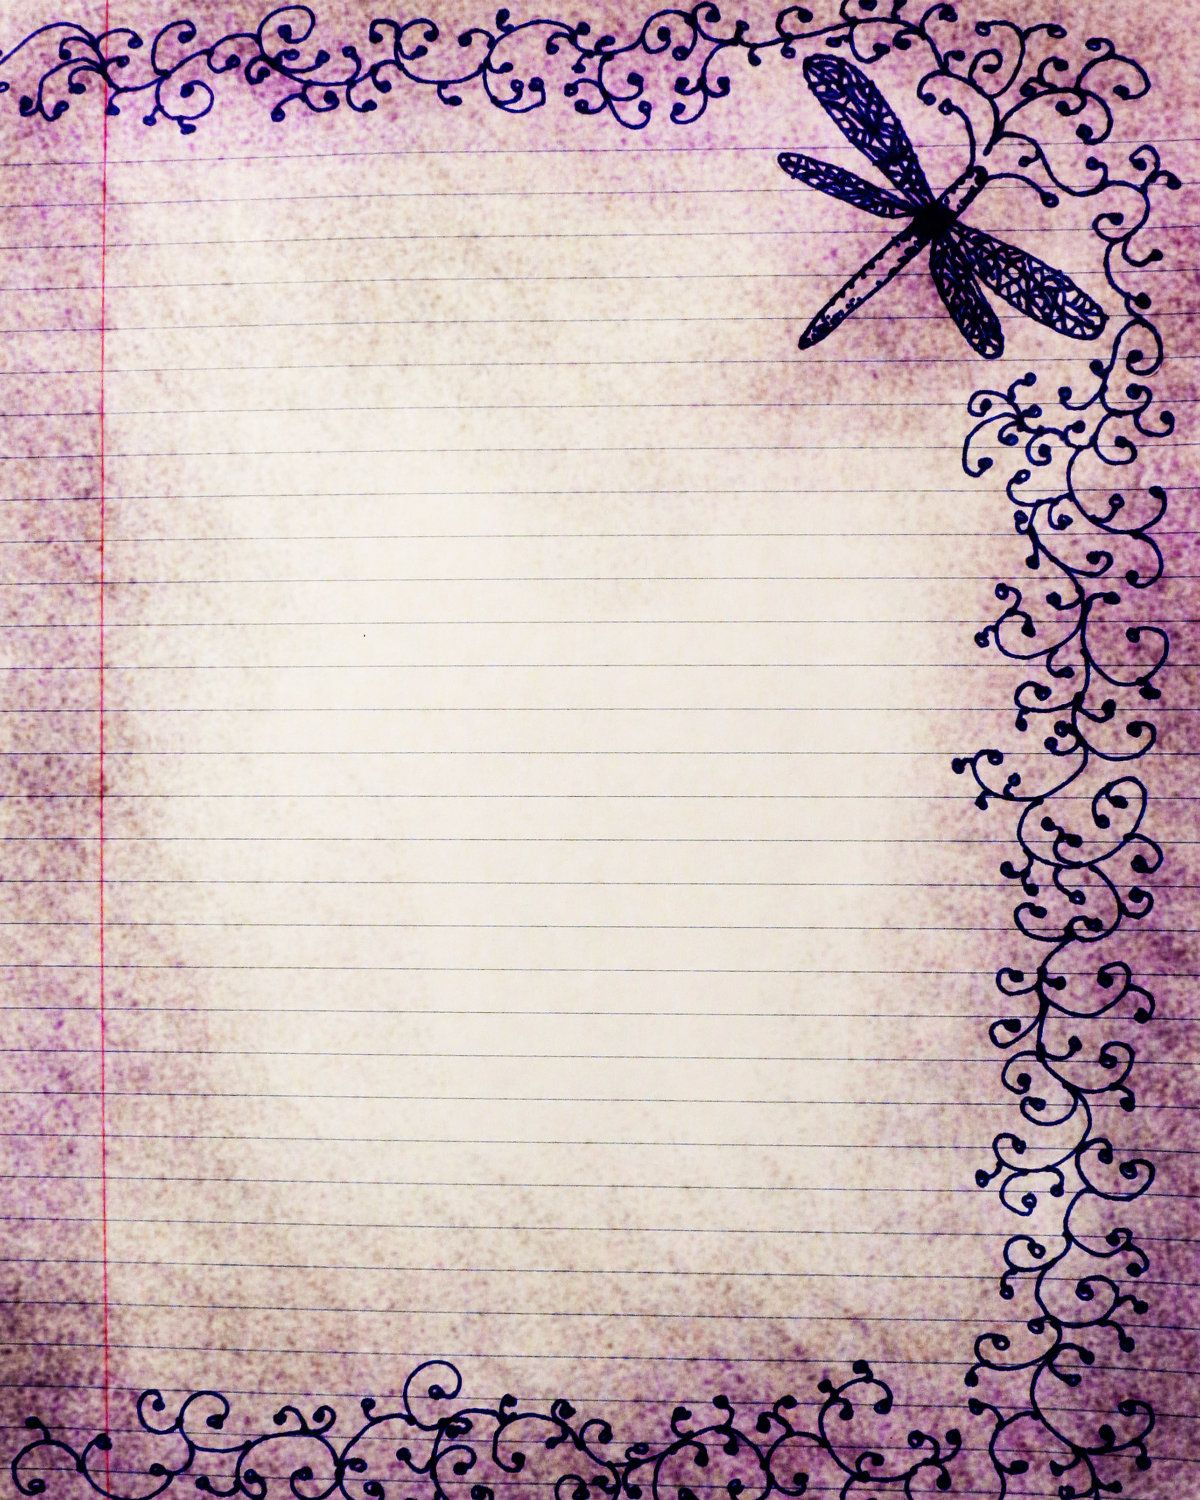 Free Printable Vintage Stationery Paper | Stationary Girls - Free Printable Journal Pages Lined